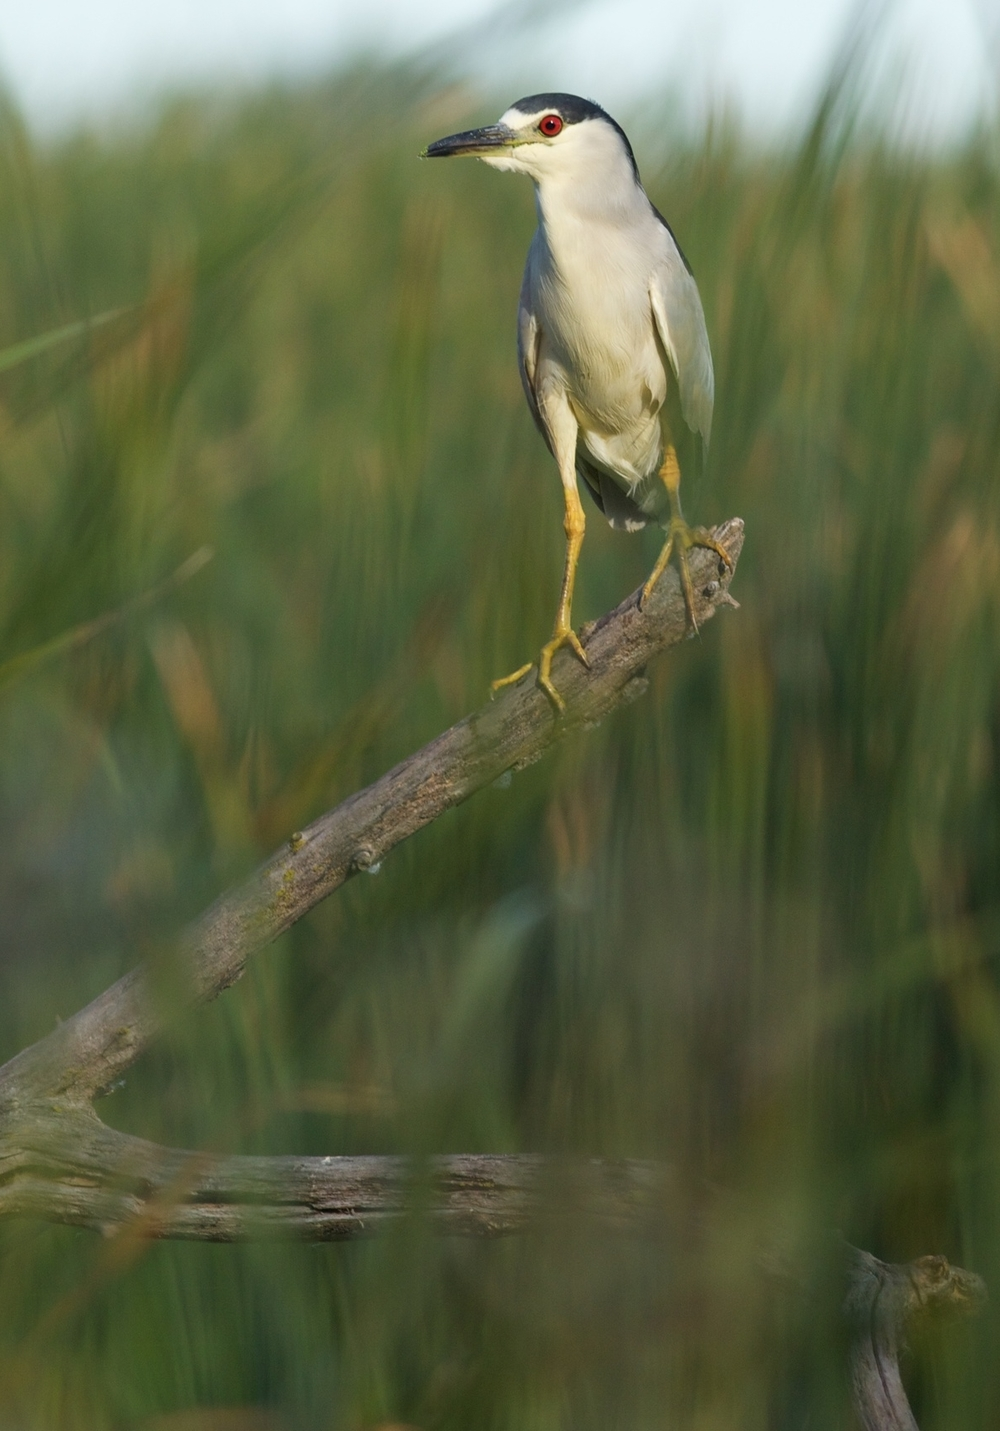 Black-crowned night heron. Photo by Arlene Koziol